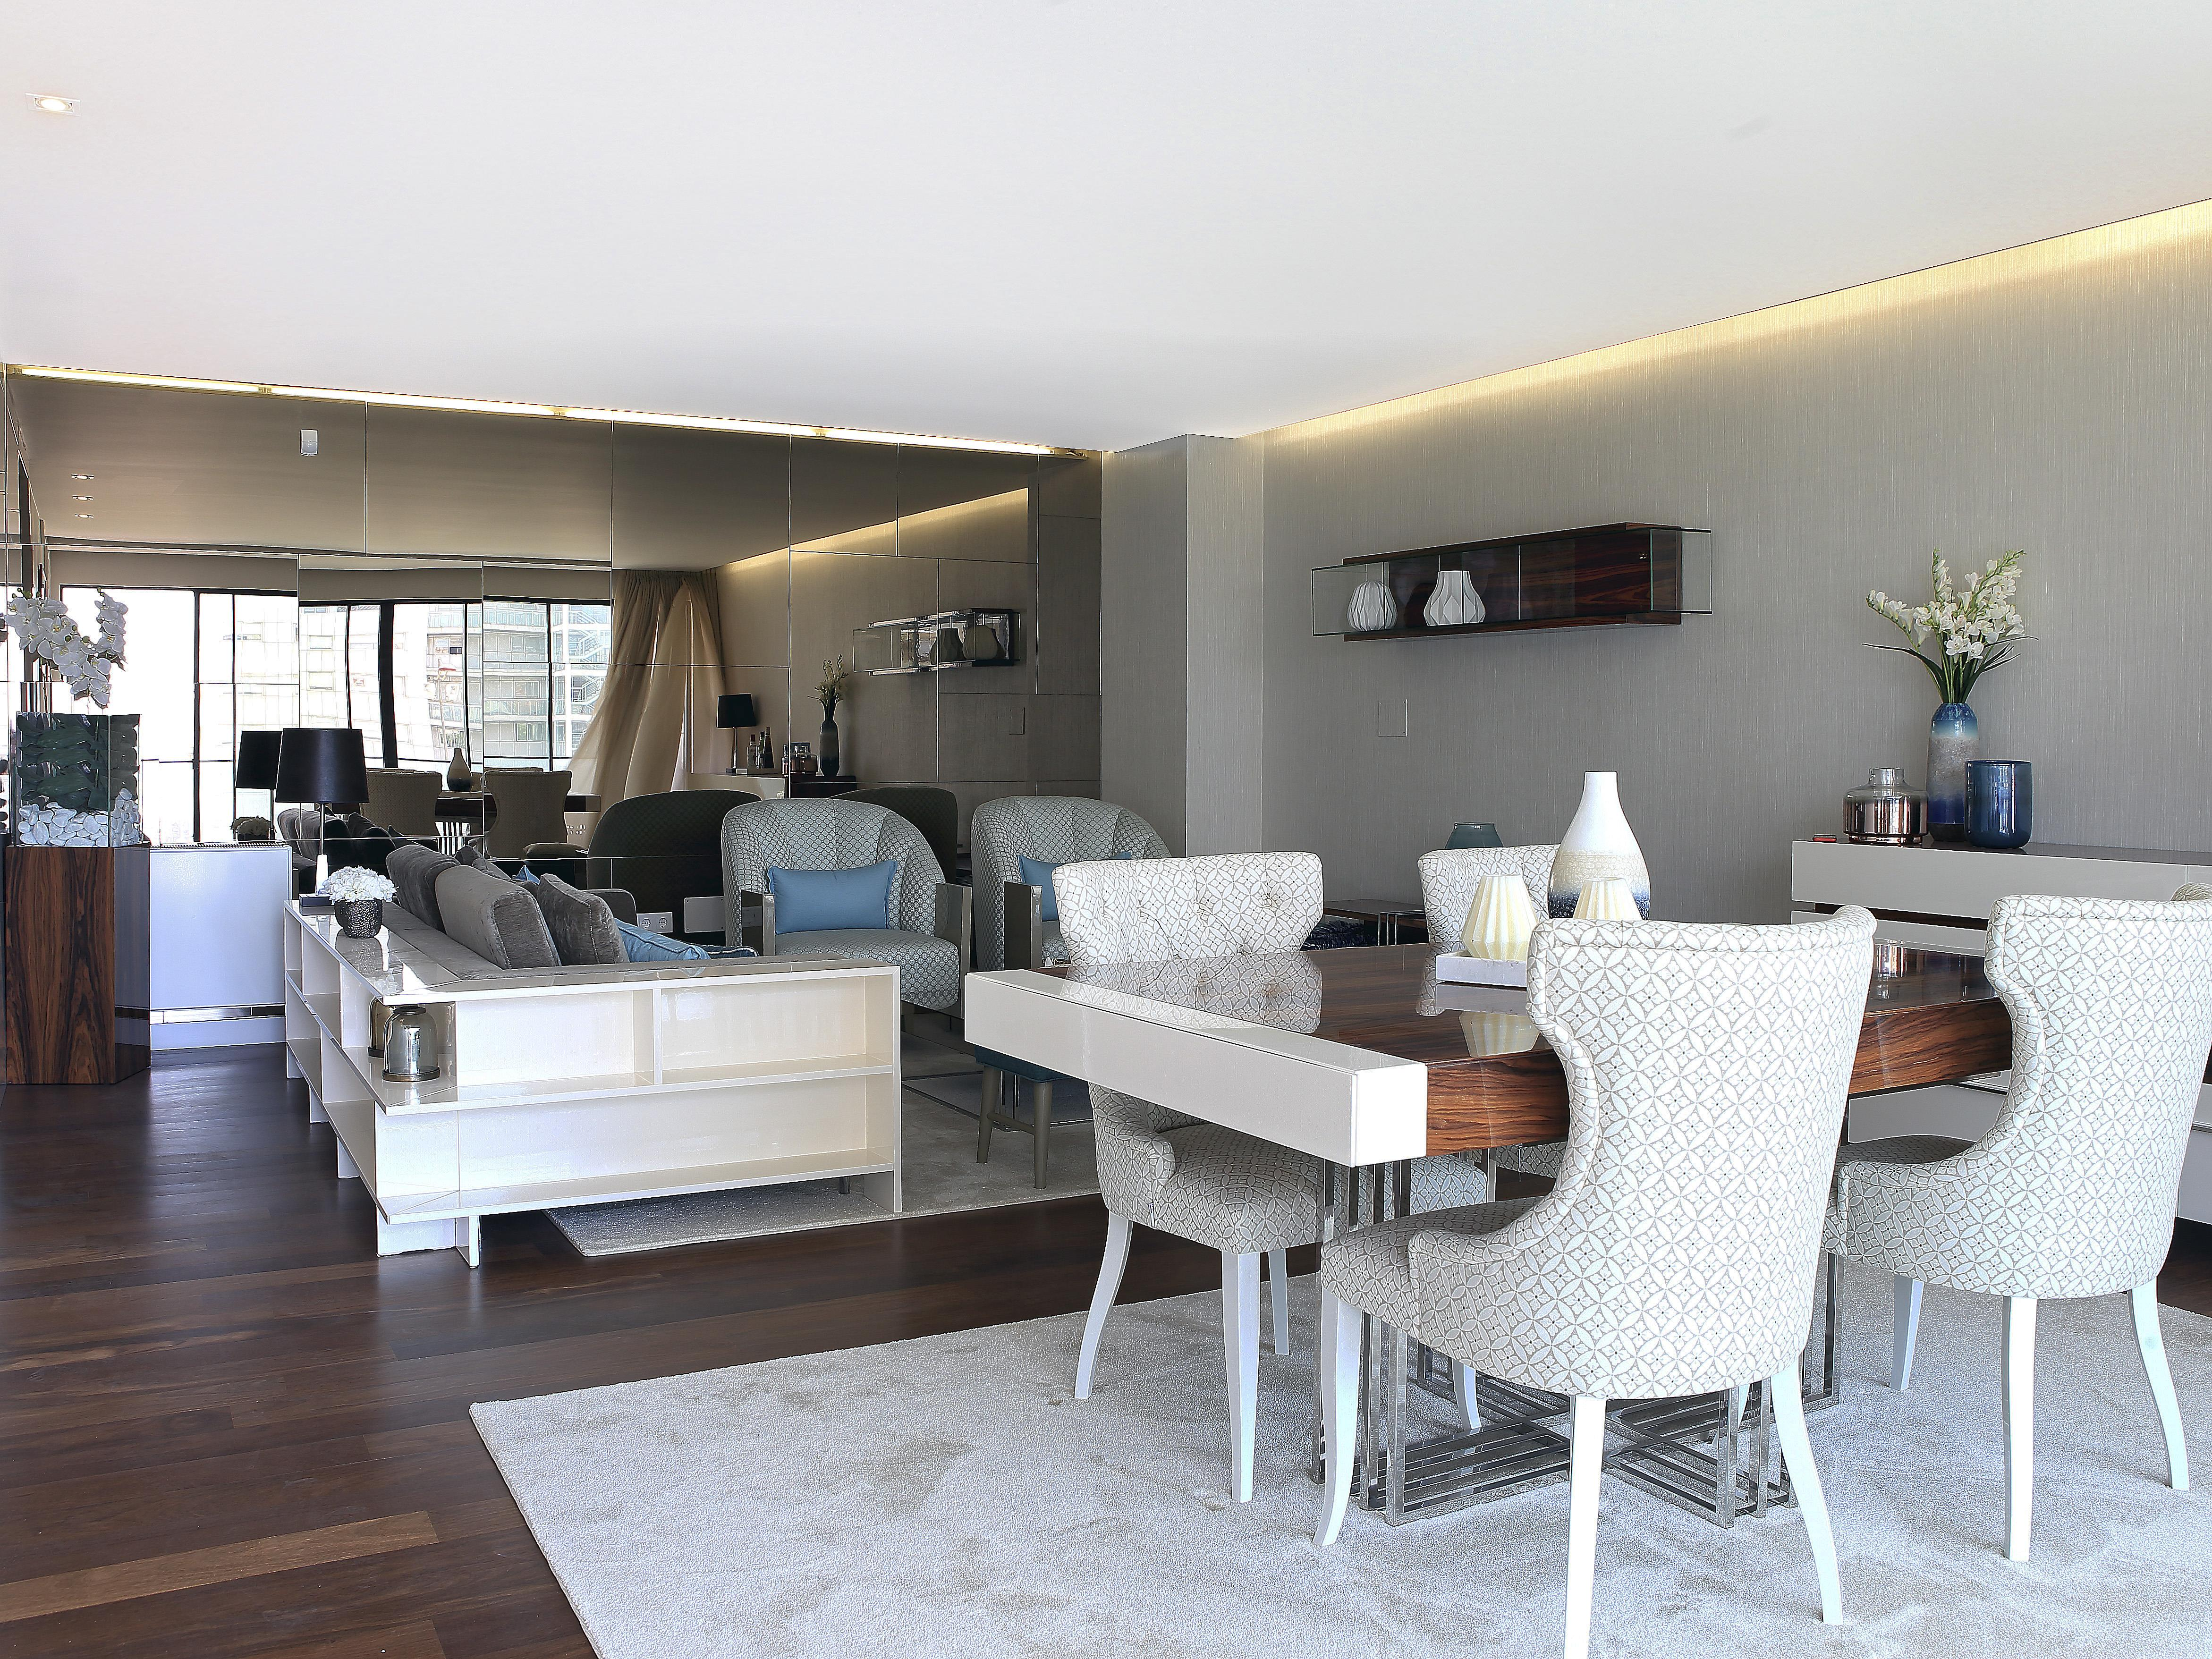 Apartment for Sale at Flat, 3 bedrooms, for Sale Other Portugal, Other Areas In Portugal, Portugal